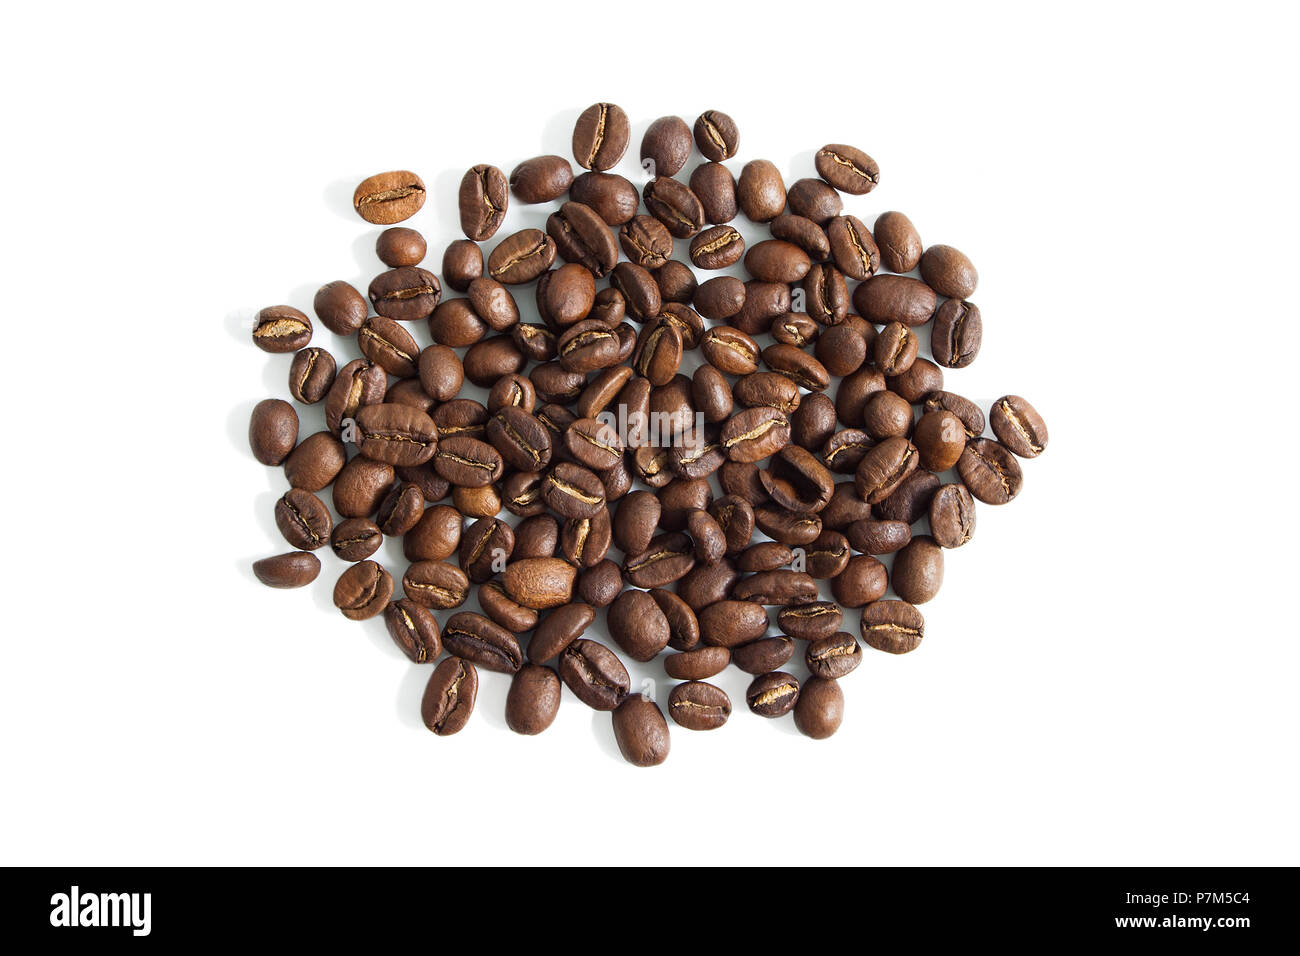 Coffee beans from above isolated on a white background. - Stock Image